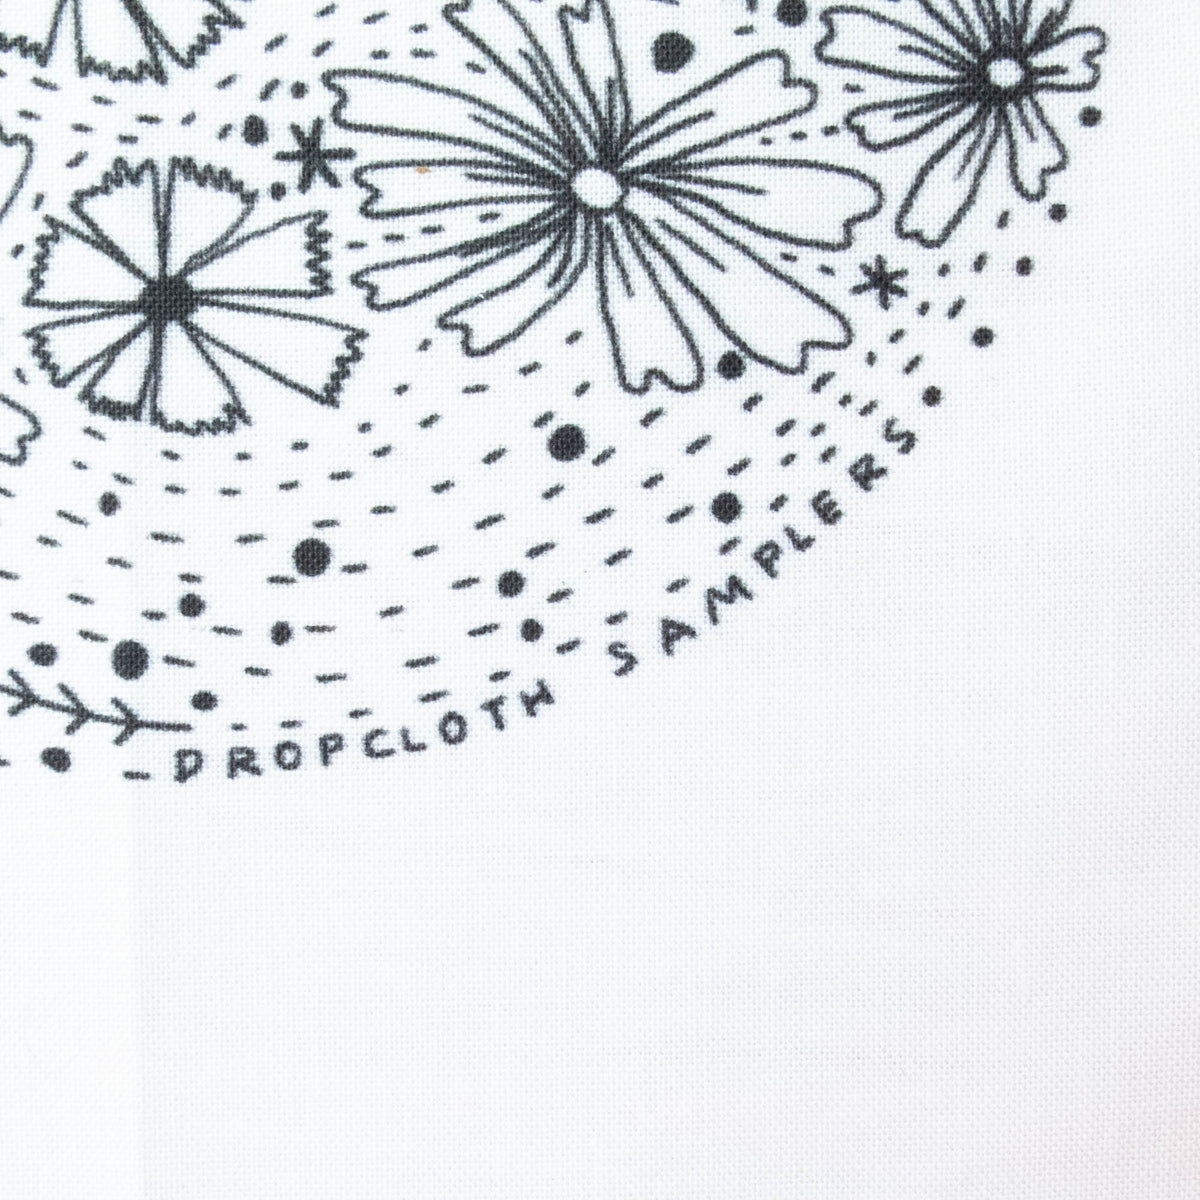 Dropcloth Embroidery Samplers :: Meadow Sampler